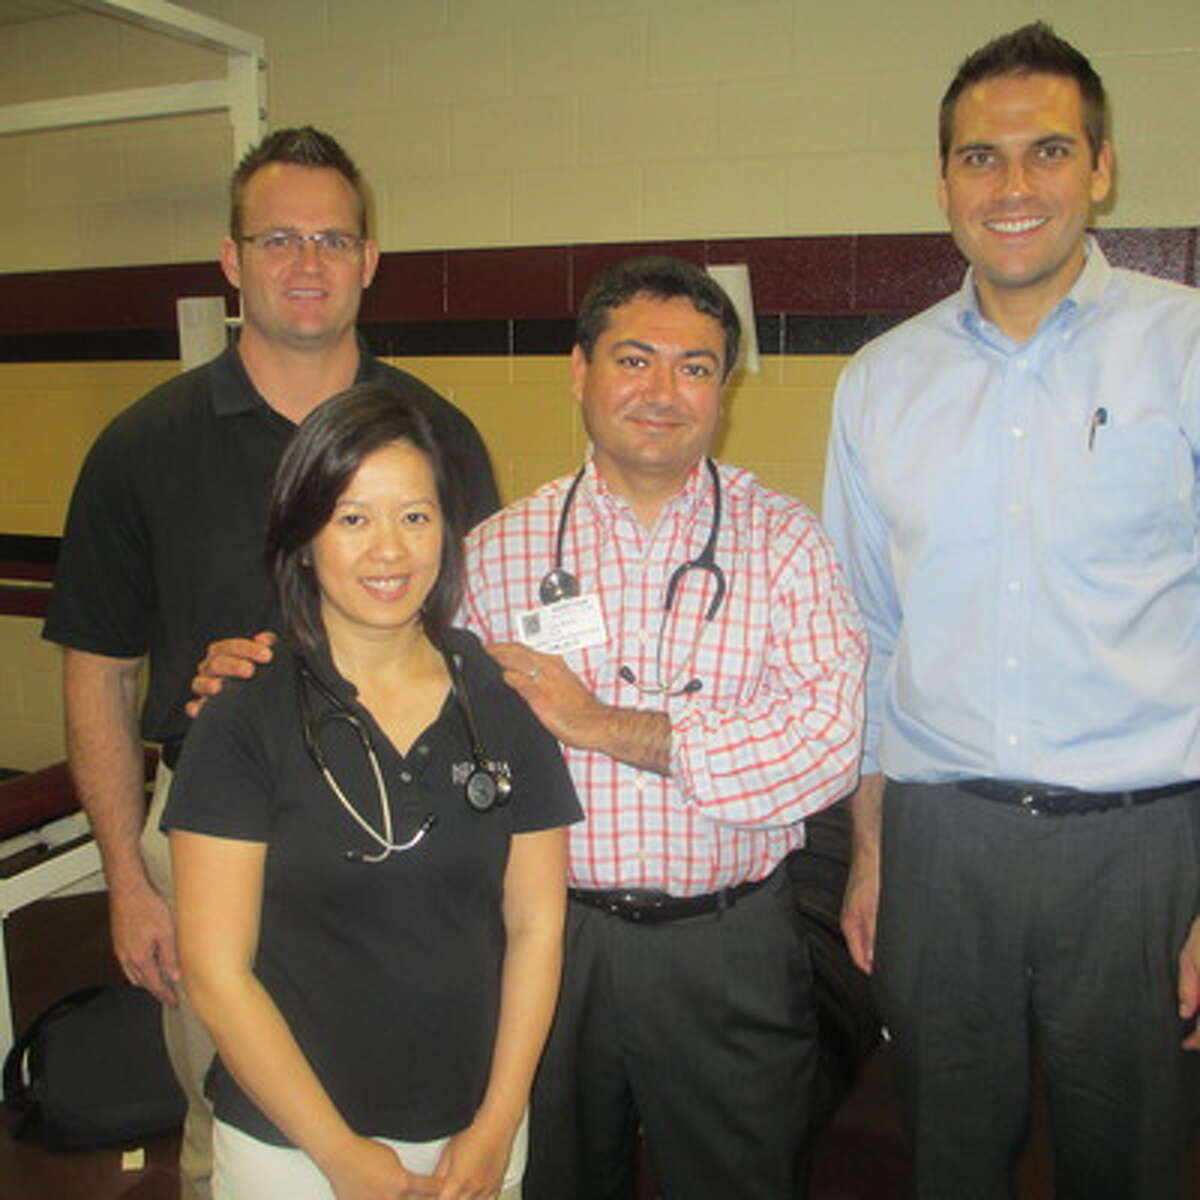 Assisting in providing physicals to students last year were, from left, Drs. Shaun Weaver, Doan Do, Tejas Mehta and Wasyl Fedoriw.